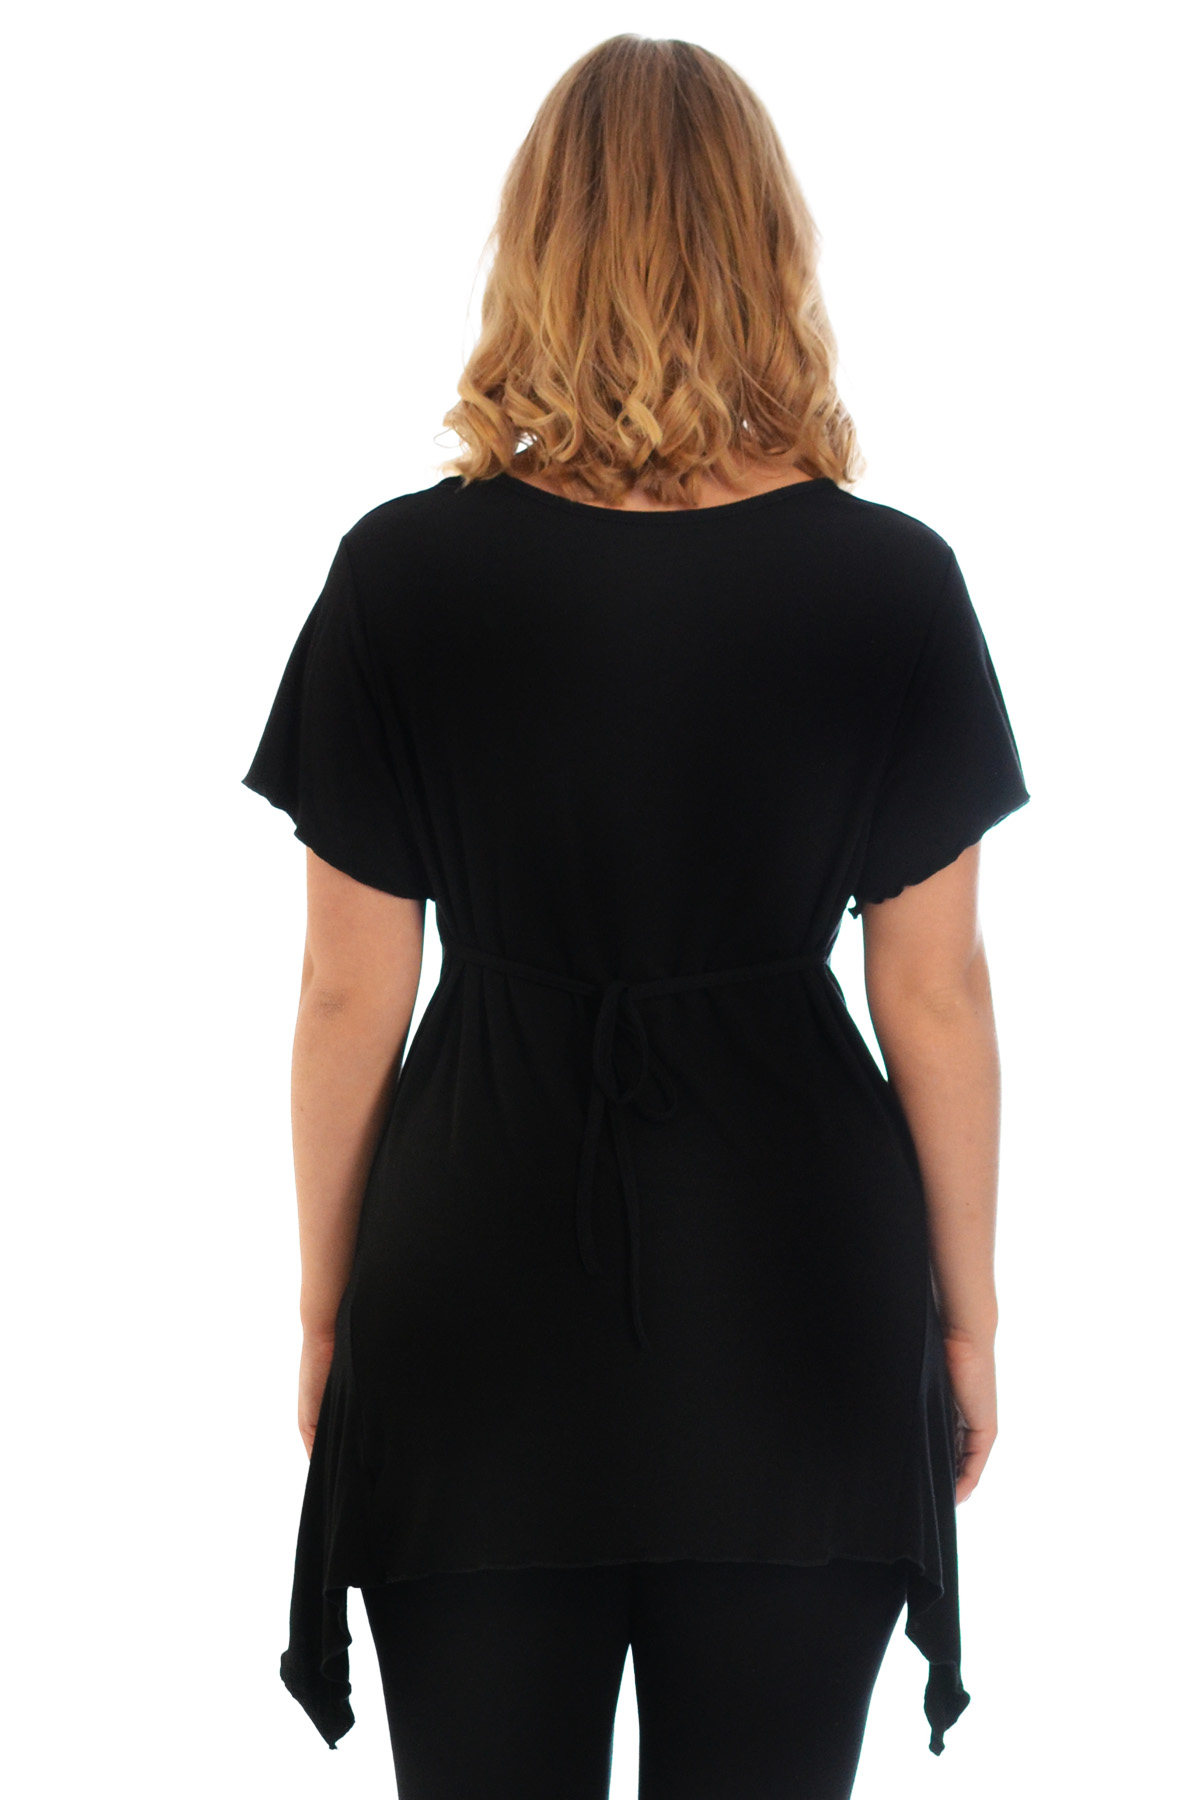 New-Womens-Plus-Size-Top-Ladies-T-Shirt-Buckle-Stud-A-Line-Asymmetric-Nouvelle thumbnail 14